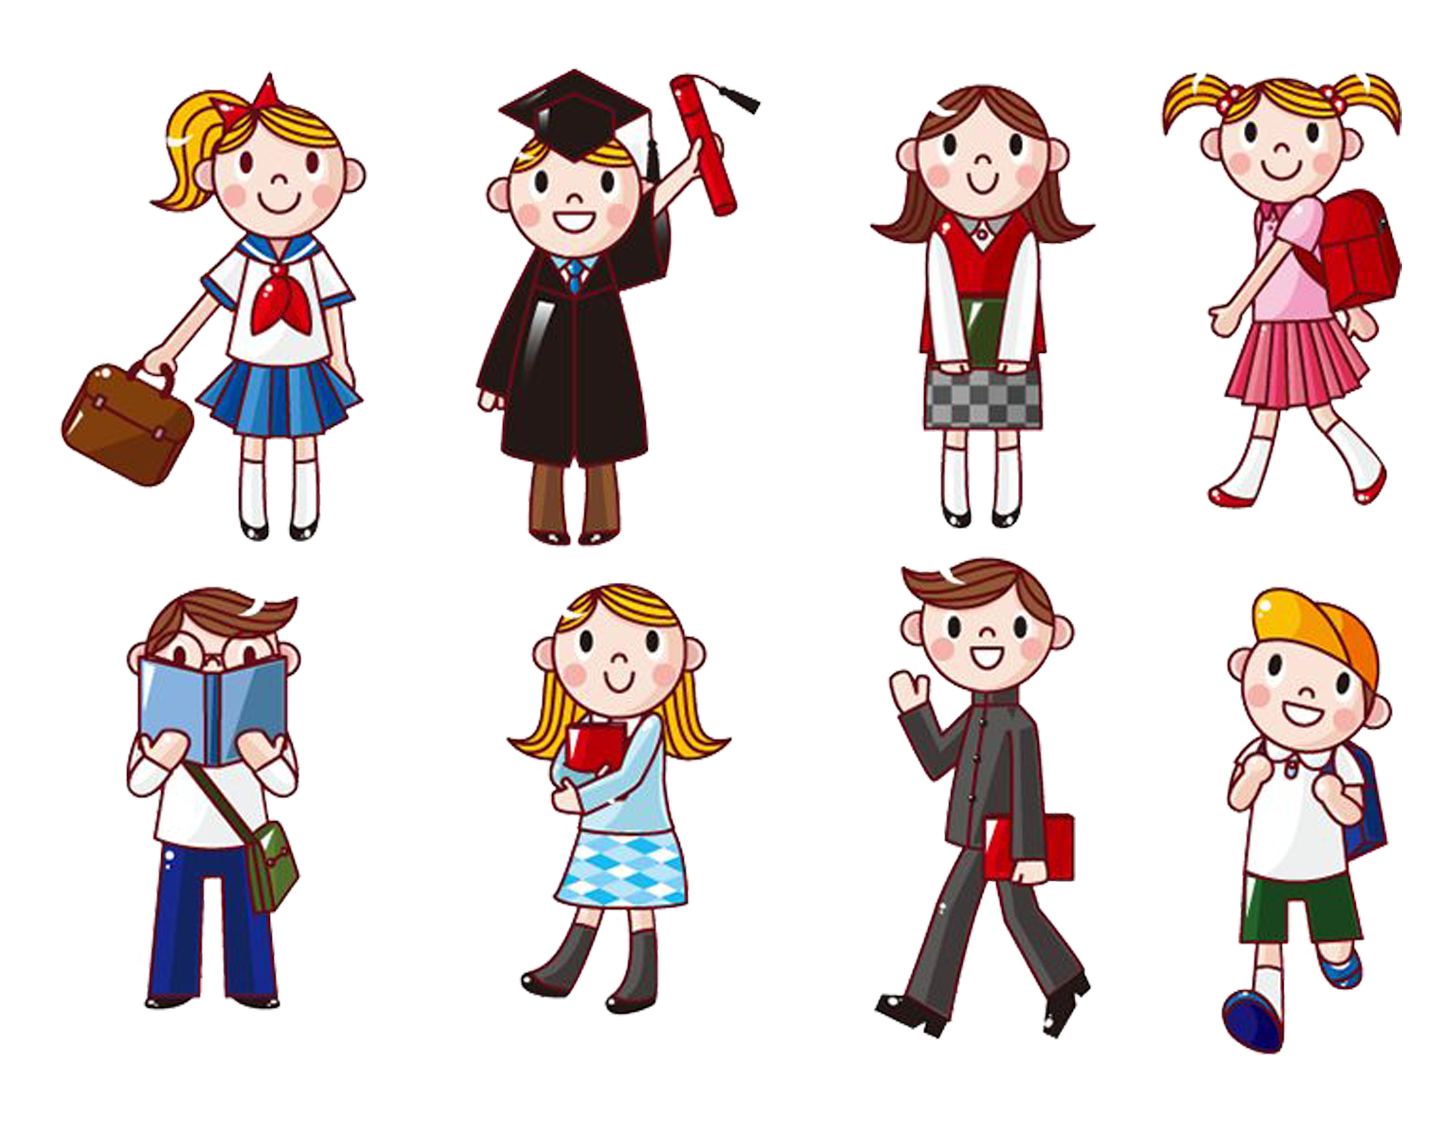 Human clipart college student. Cartoon computer icons clip